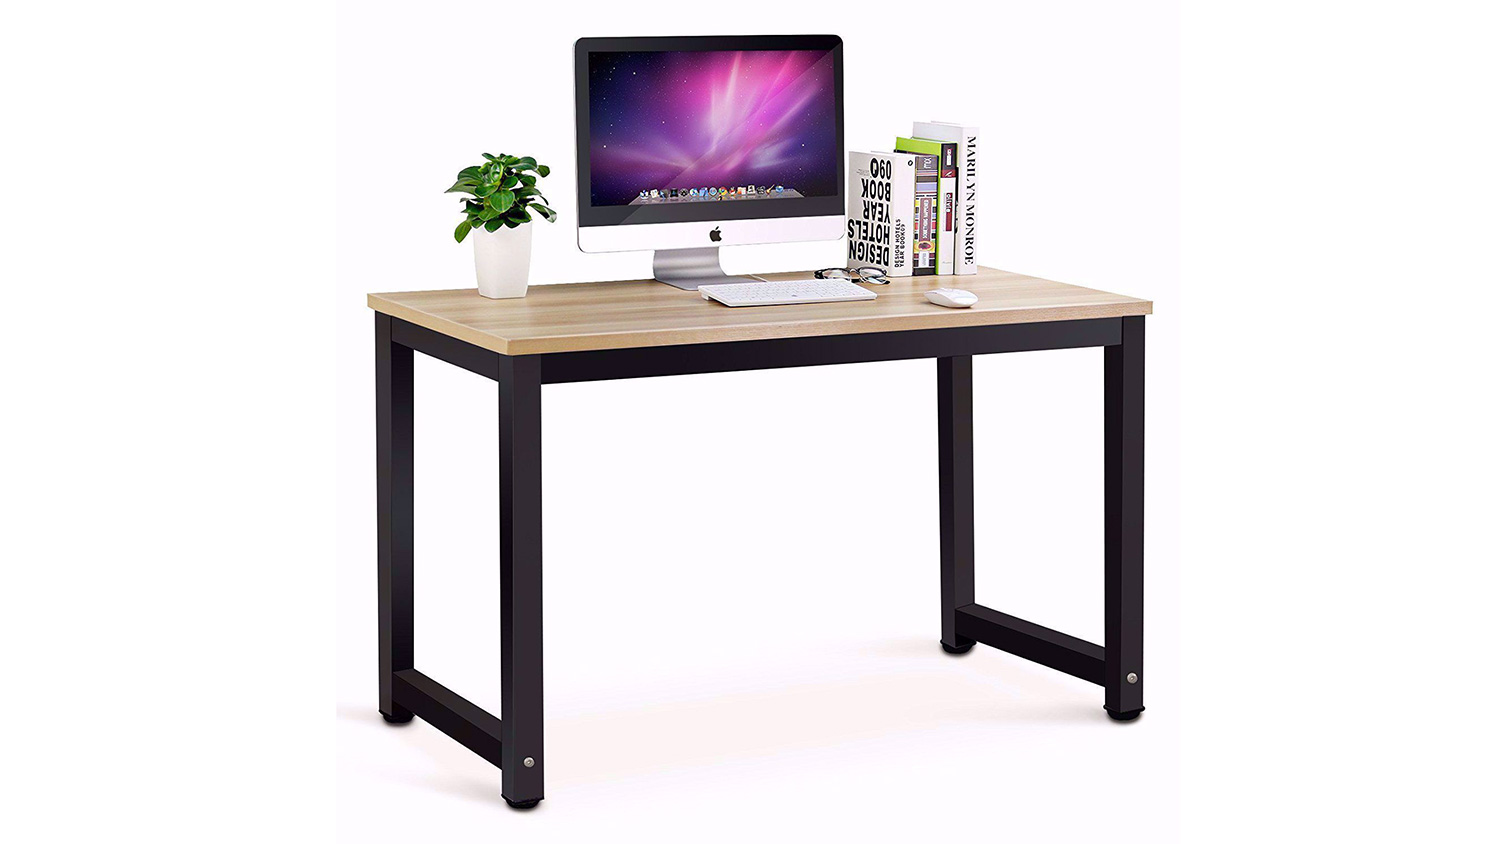 Oak Trendy White Desk Concepts Creative Bloq